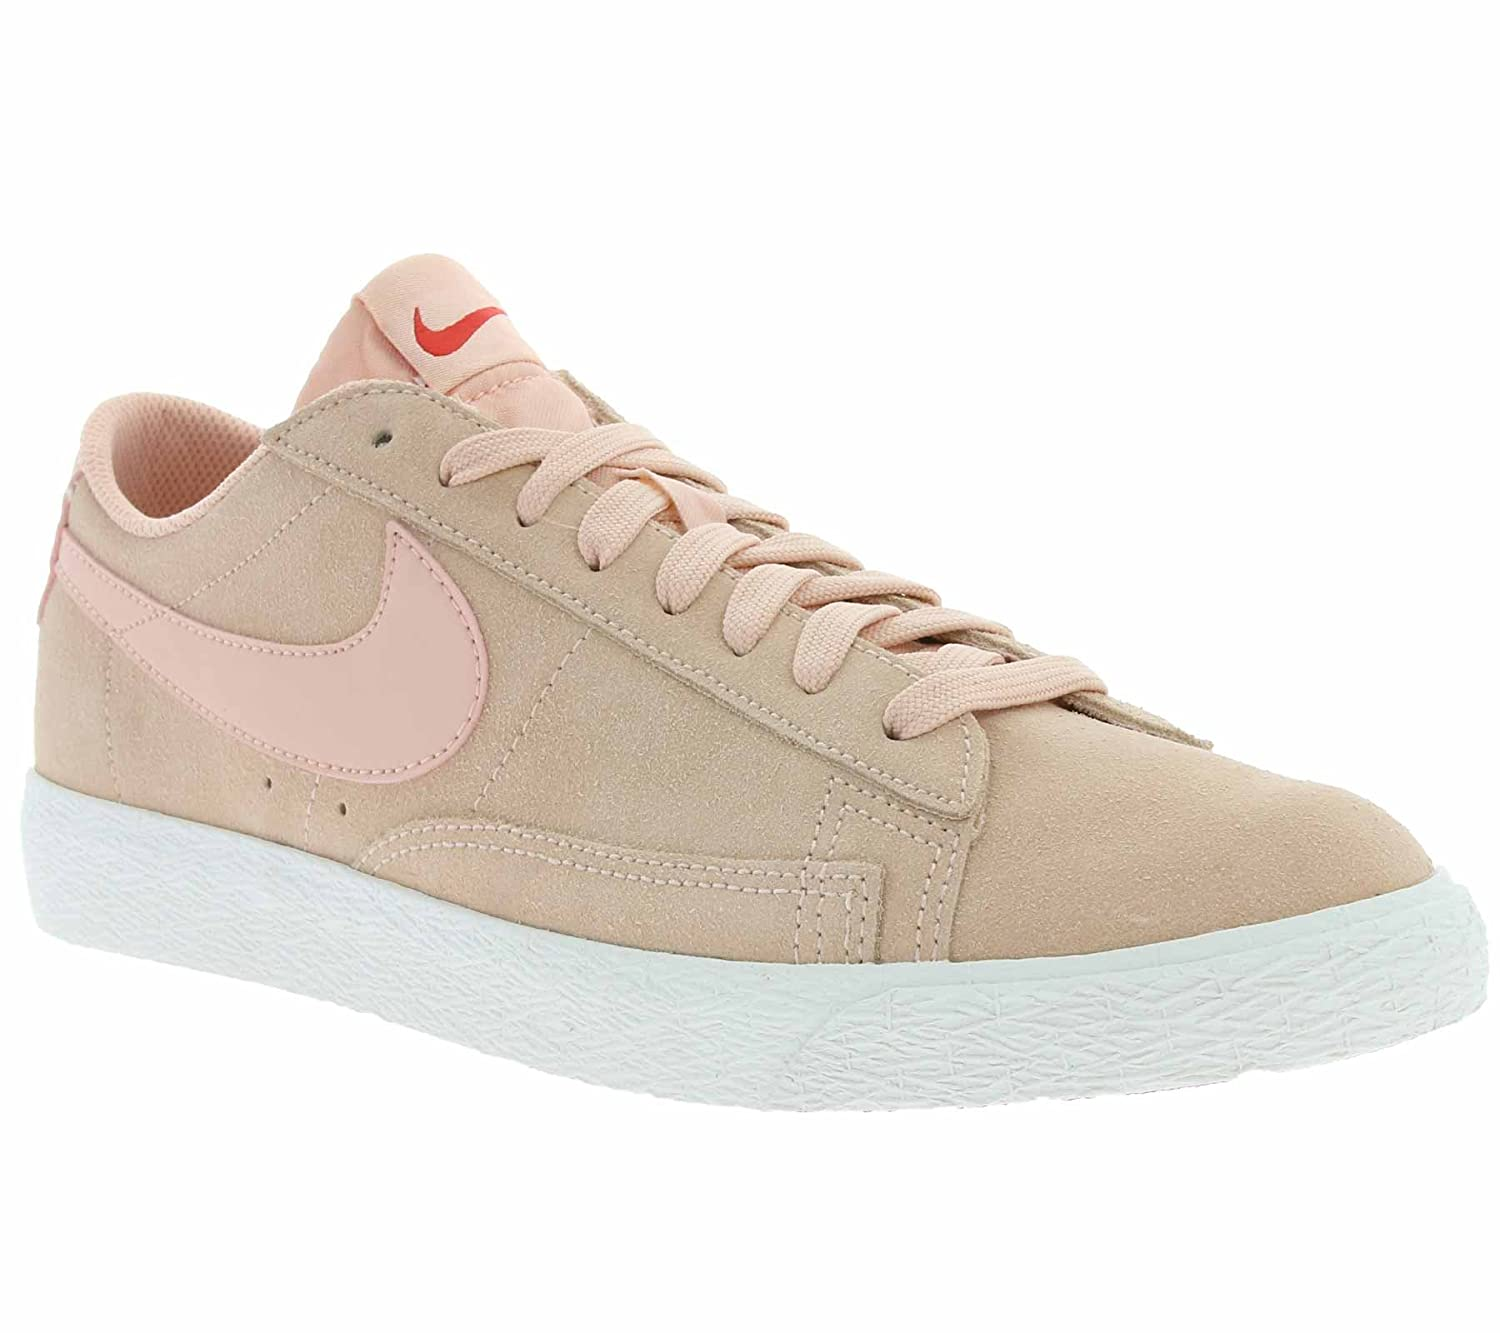 online retailer 2489e 84534 Amazon.com   Nike Blazer Low Mens Trainers 371760 Sneakers Shoes   Fashion  Sneakers